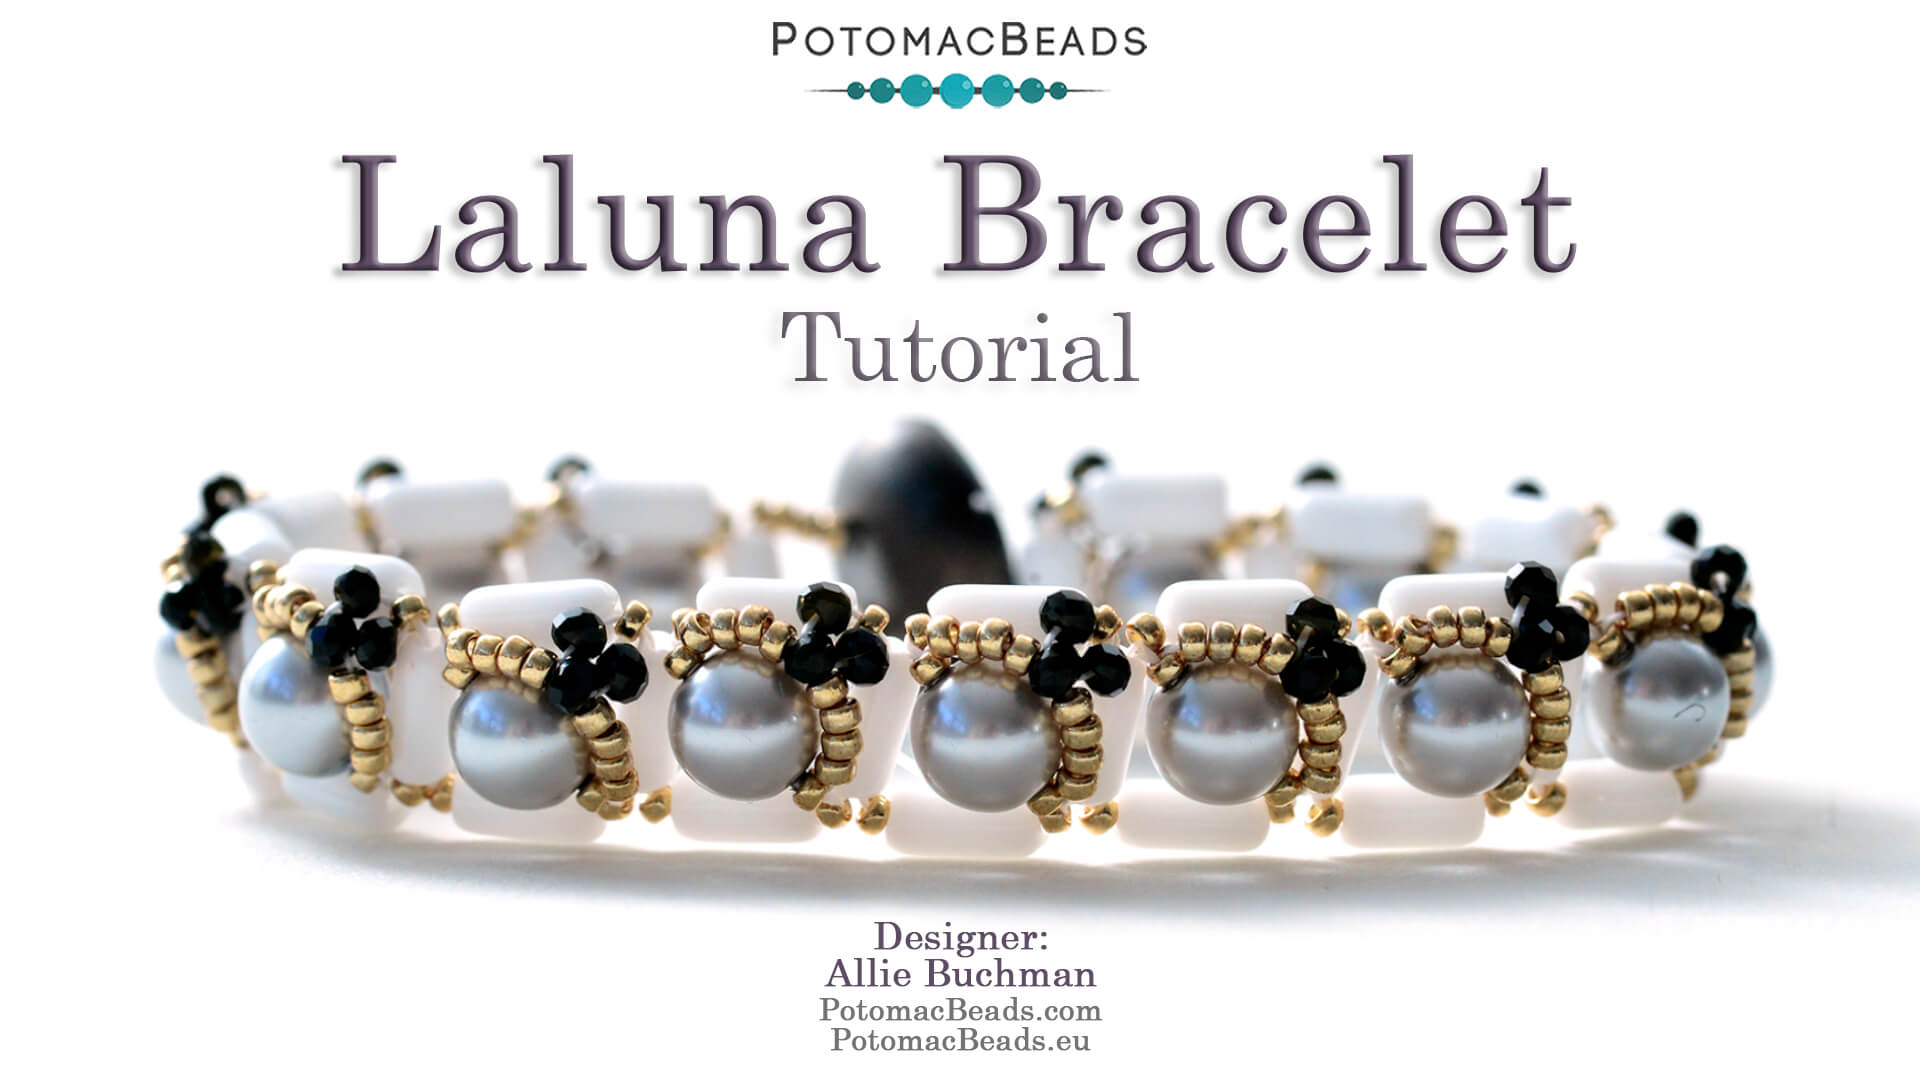 How to Bead Jewelry / Videos Sorted by Beads / Pearl Videos (Czech, Freshwater, Potomac Pearls) / Laluna Bracelet Tutorial